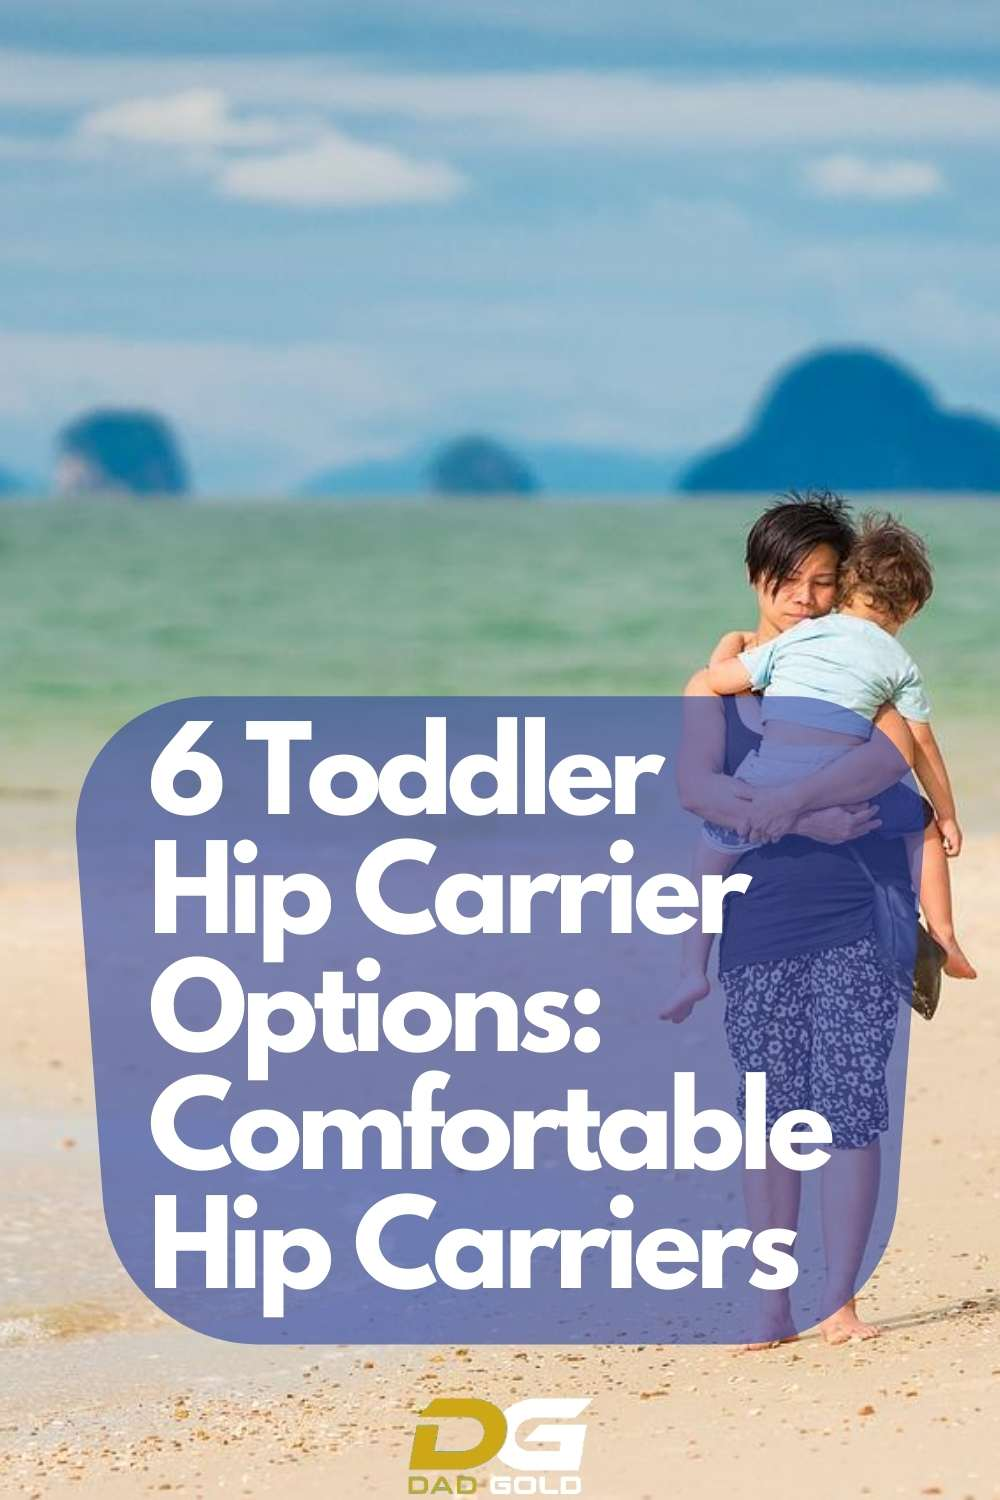 6 Toddler Hip Carrier Options Comfortable Hip Carriers